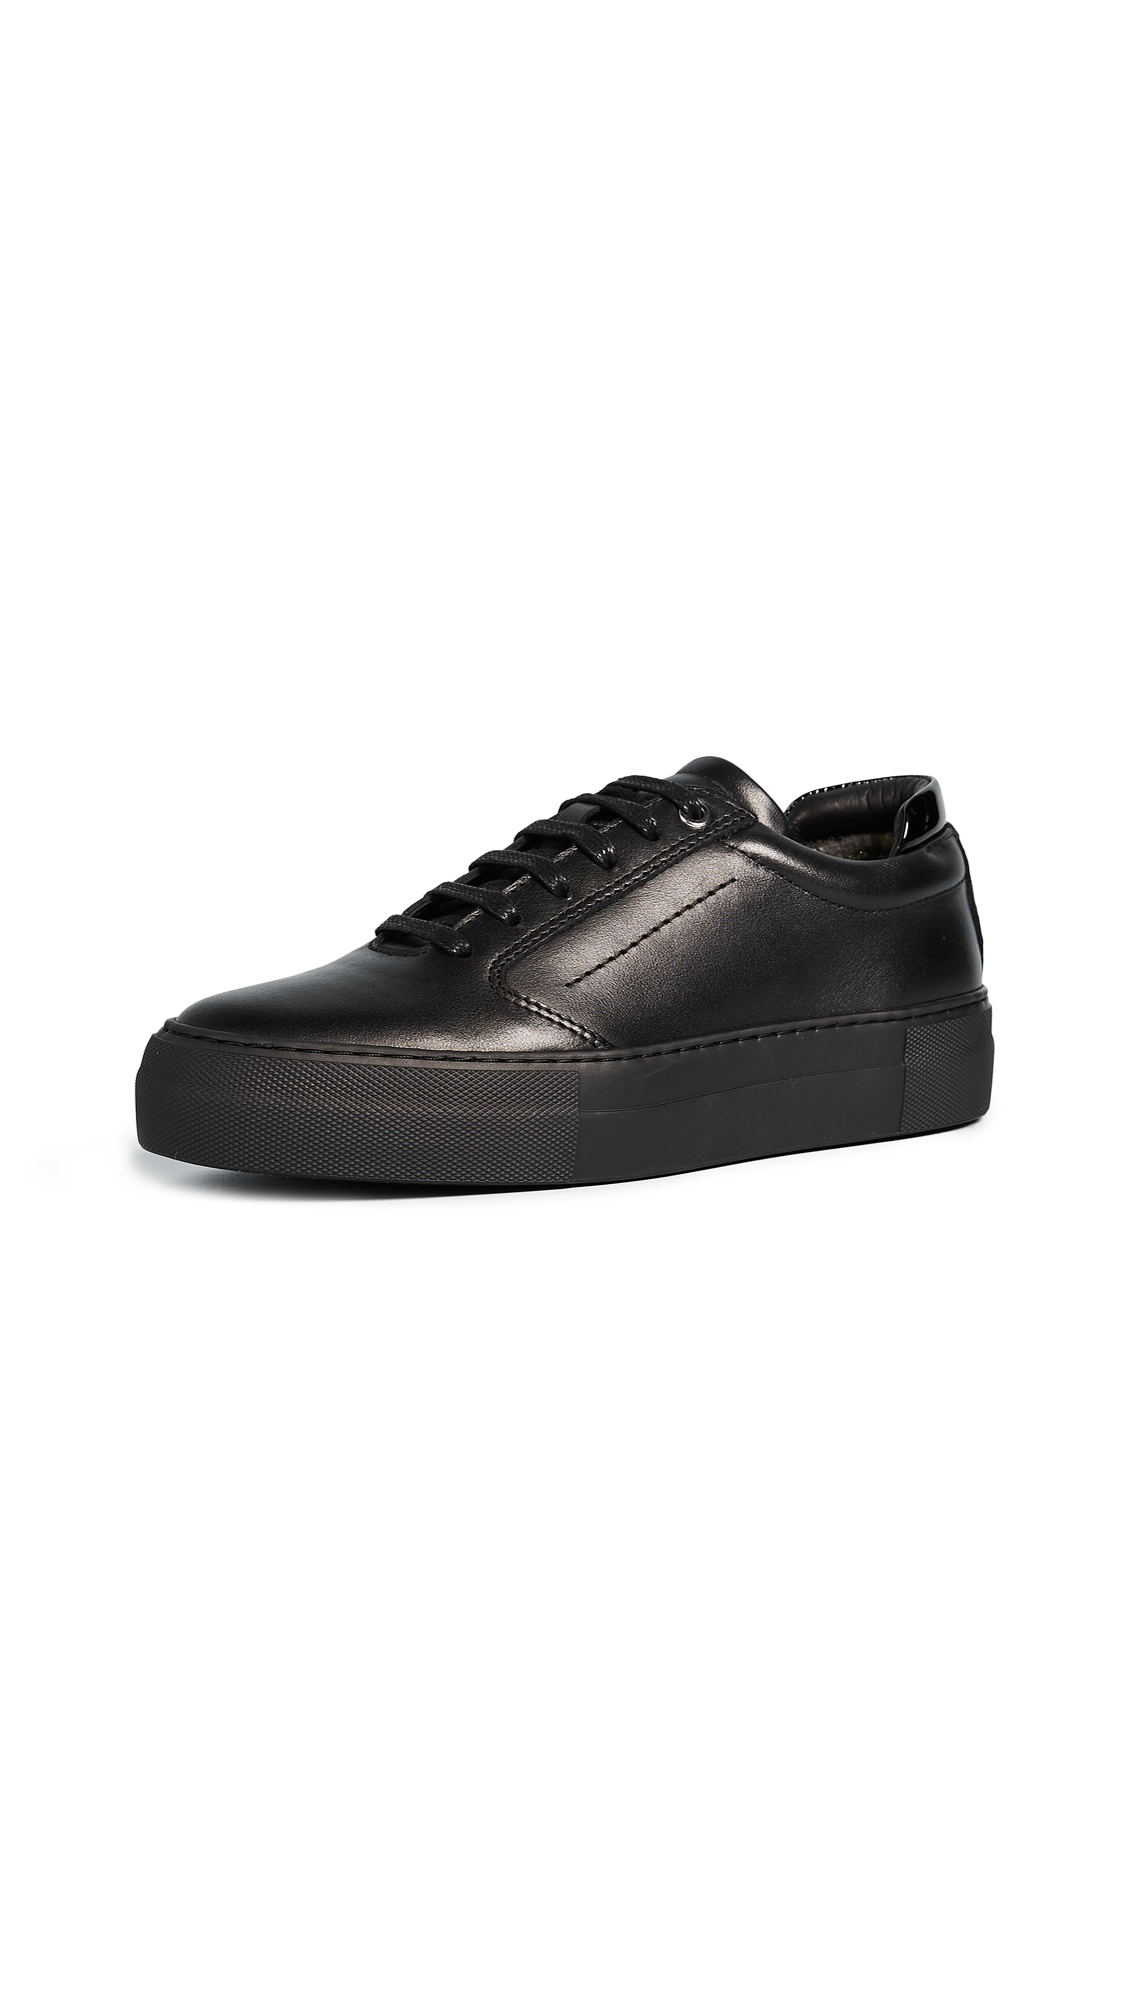 WANT Les Essentiels Lalibela Sneakers - Multi Black/Black